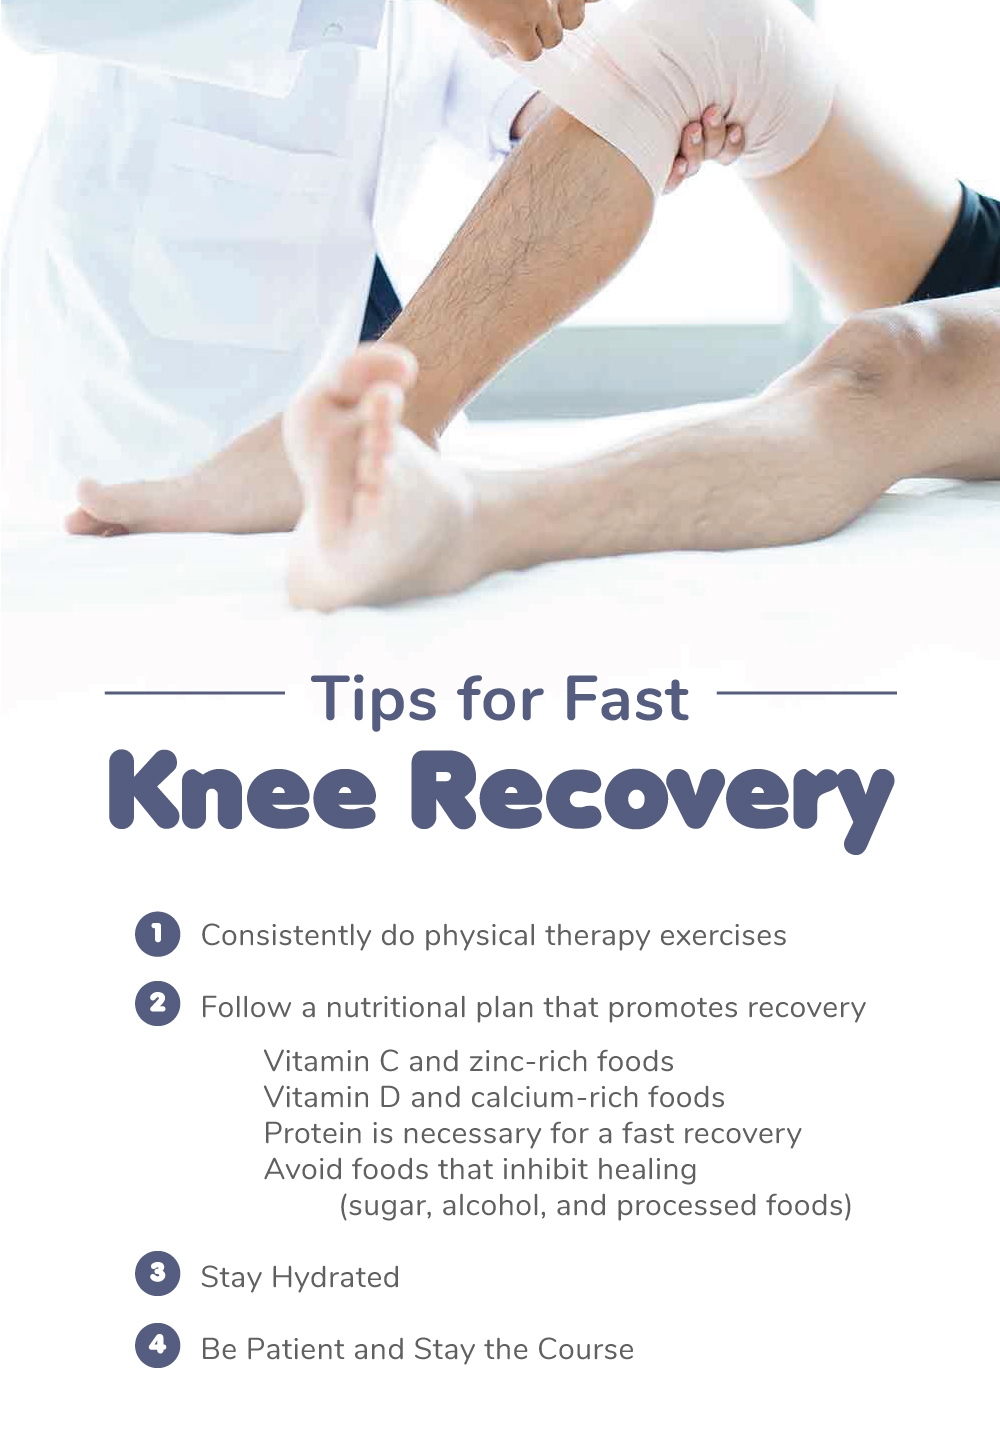 Tips for fast knee recovery